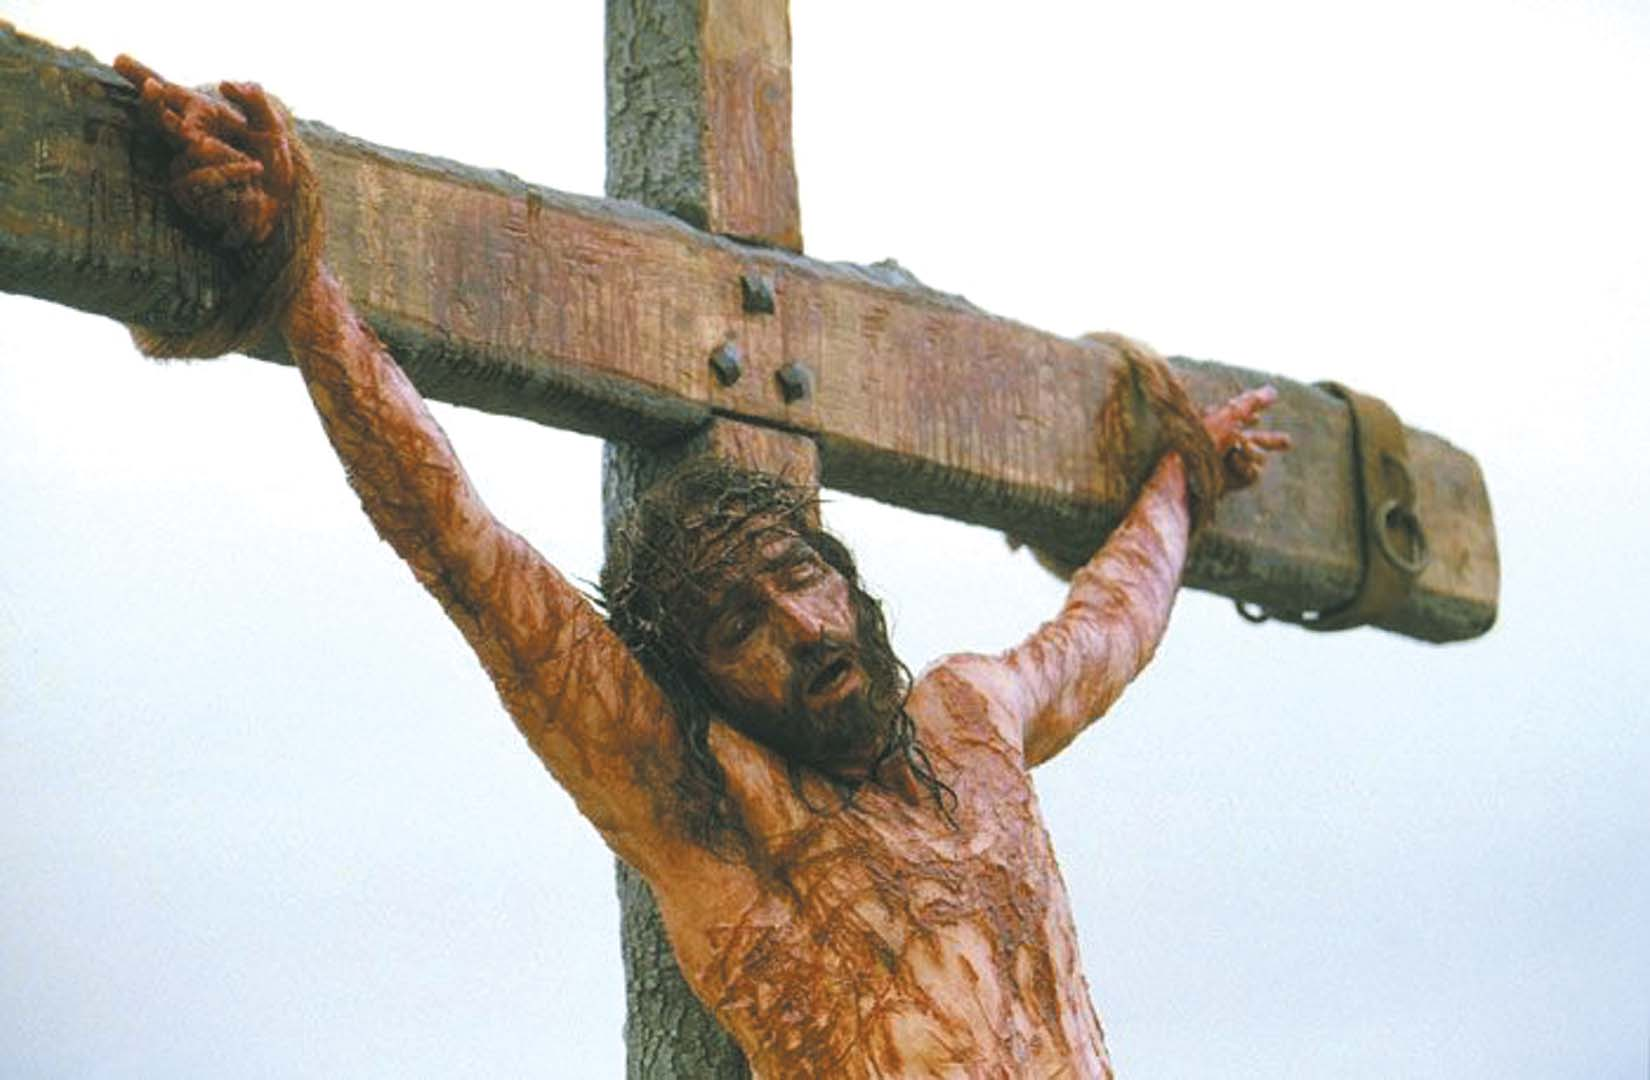 """A scene from """"The Passion of the Christ"""" depicts the crucifixion of Jesus Christ. In the 2-2.5 years since Mel Gibson's """"The Passion"""" galvanized the c..."""